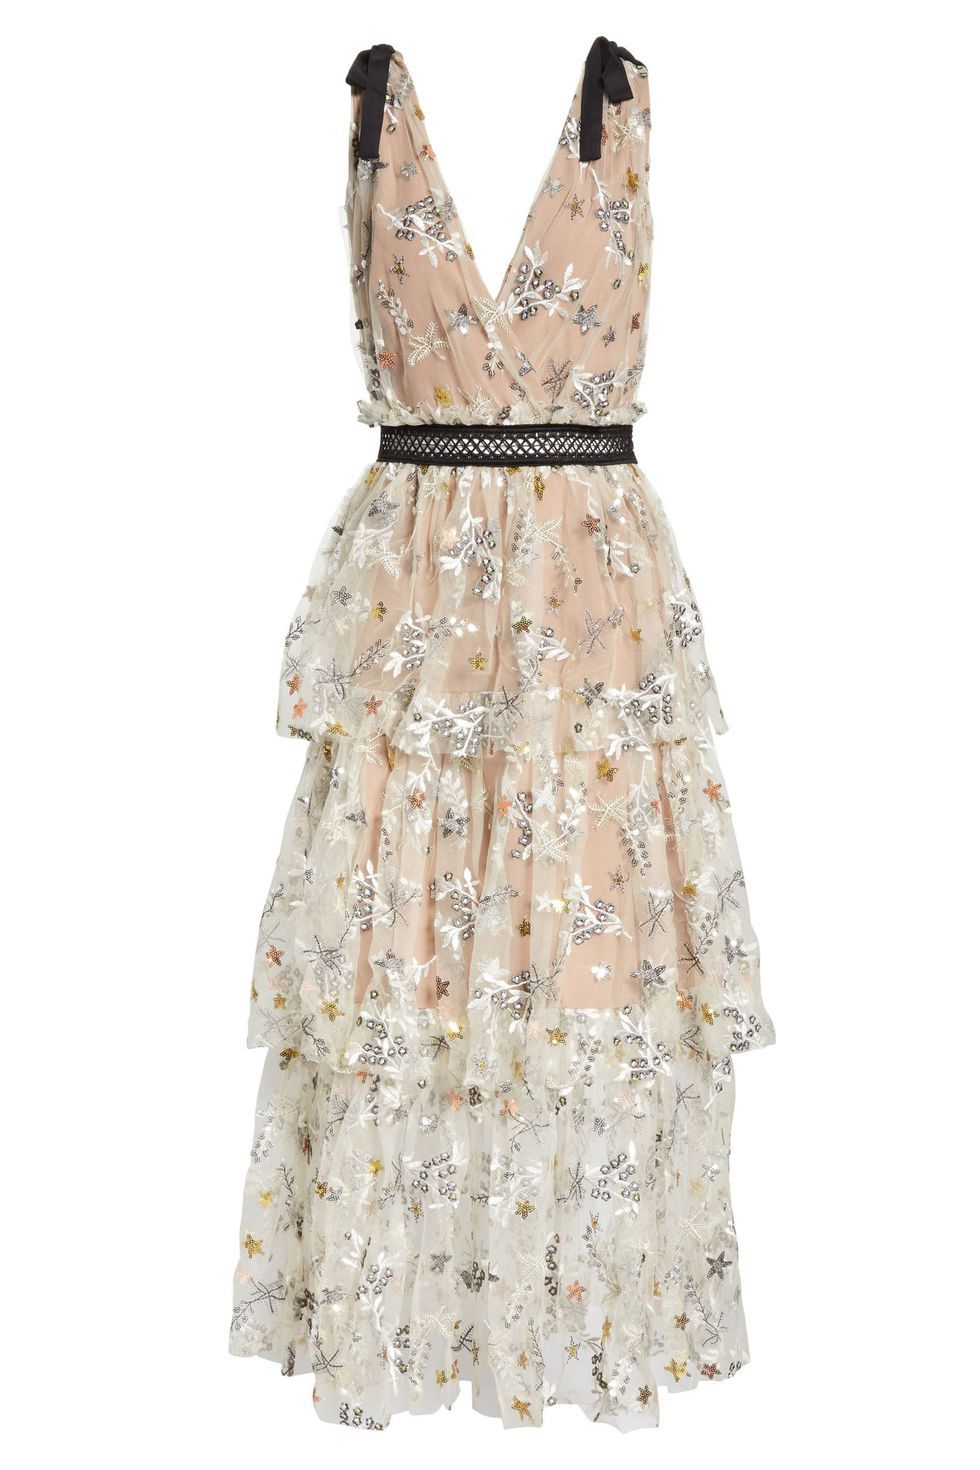 10 Beach Wedding Dresses You Can Buy Off The Rack Casual Wedding Dress Beige Cocktail Dresses Embroidered Cocktail Dress